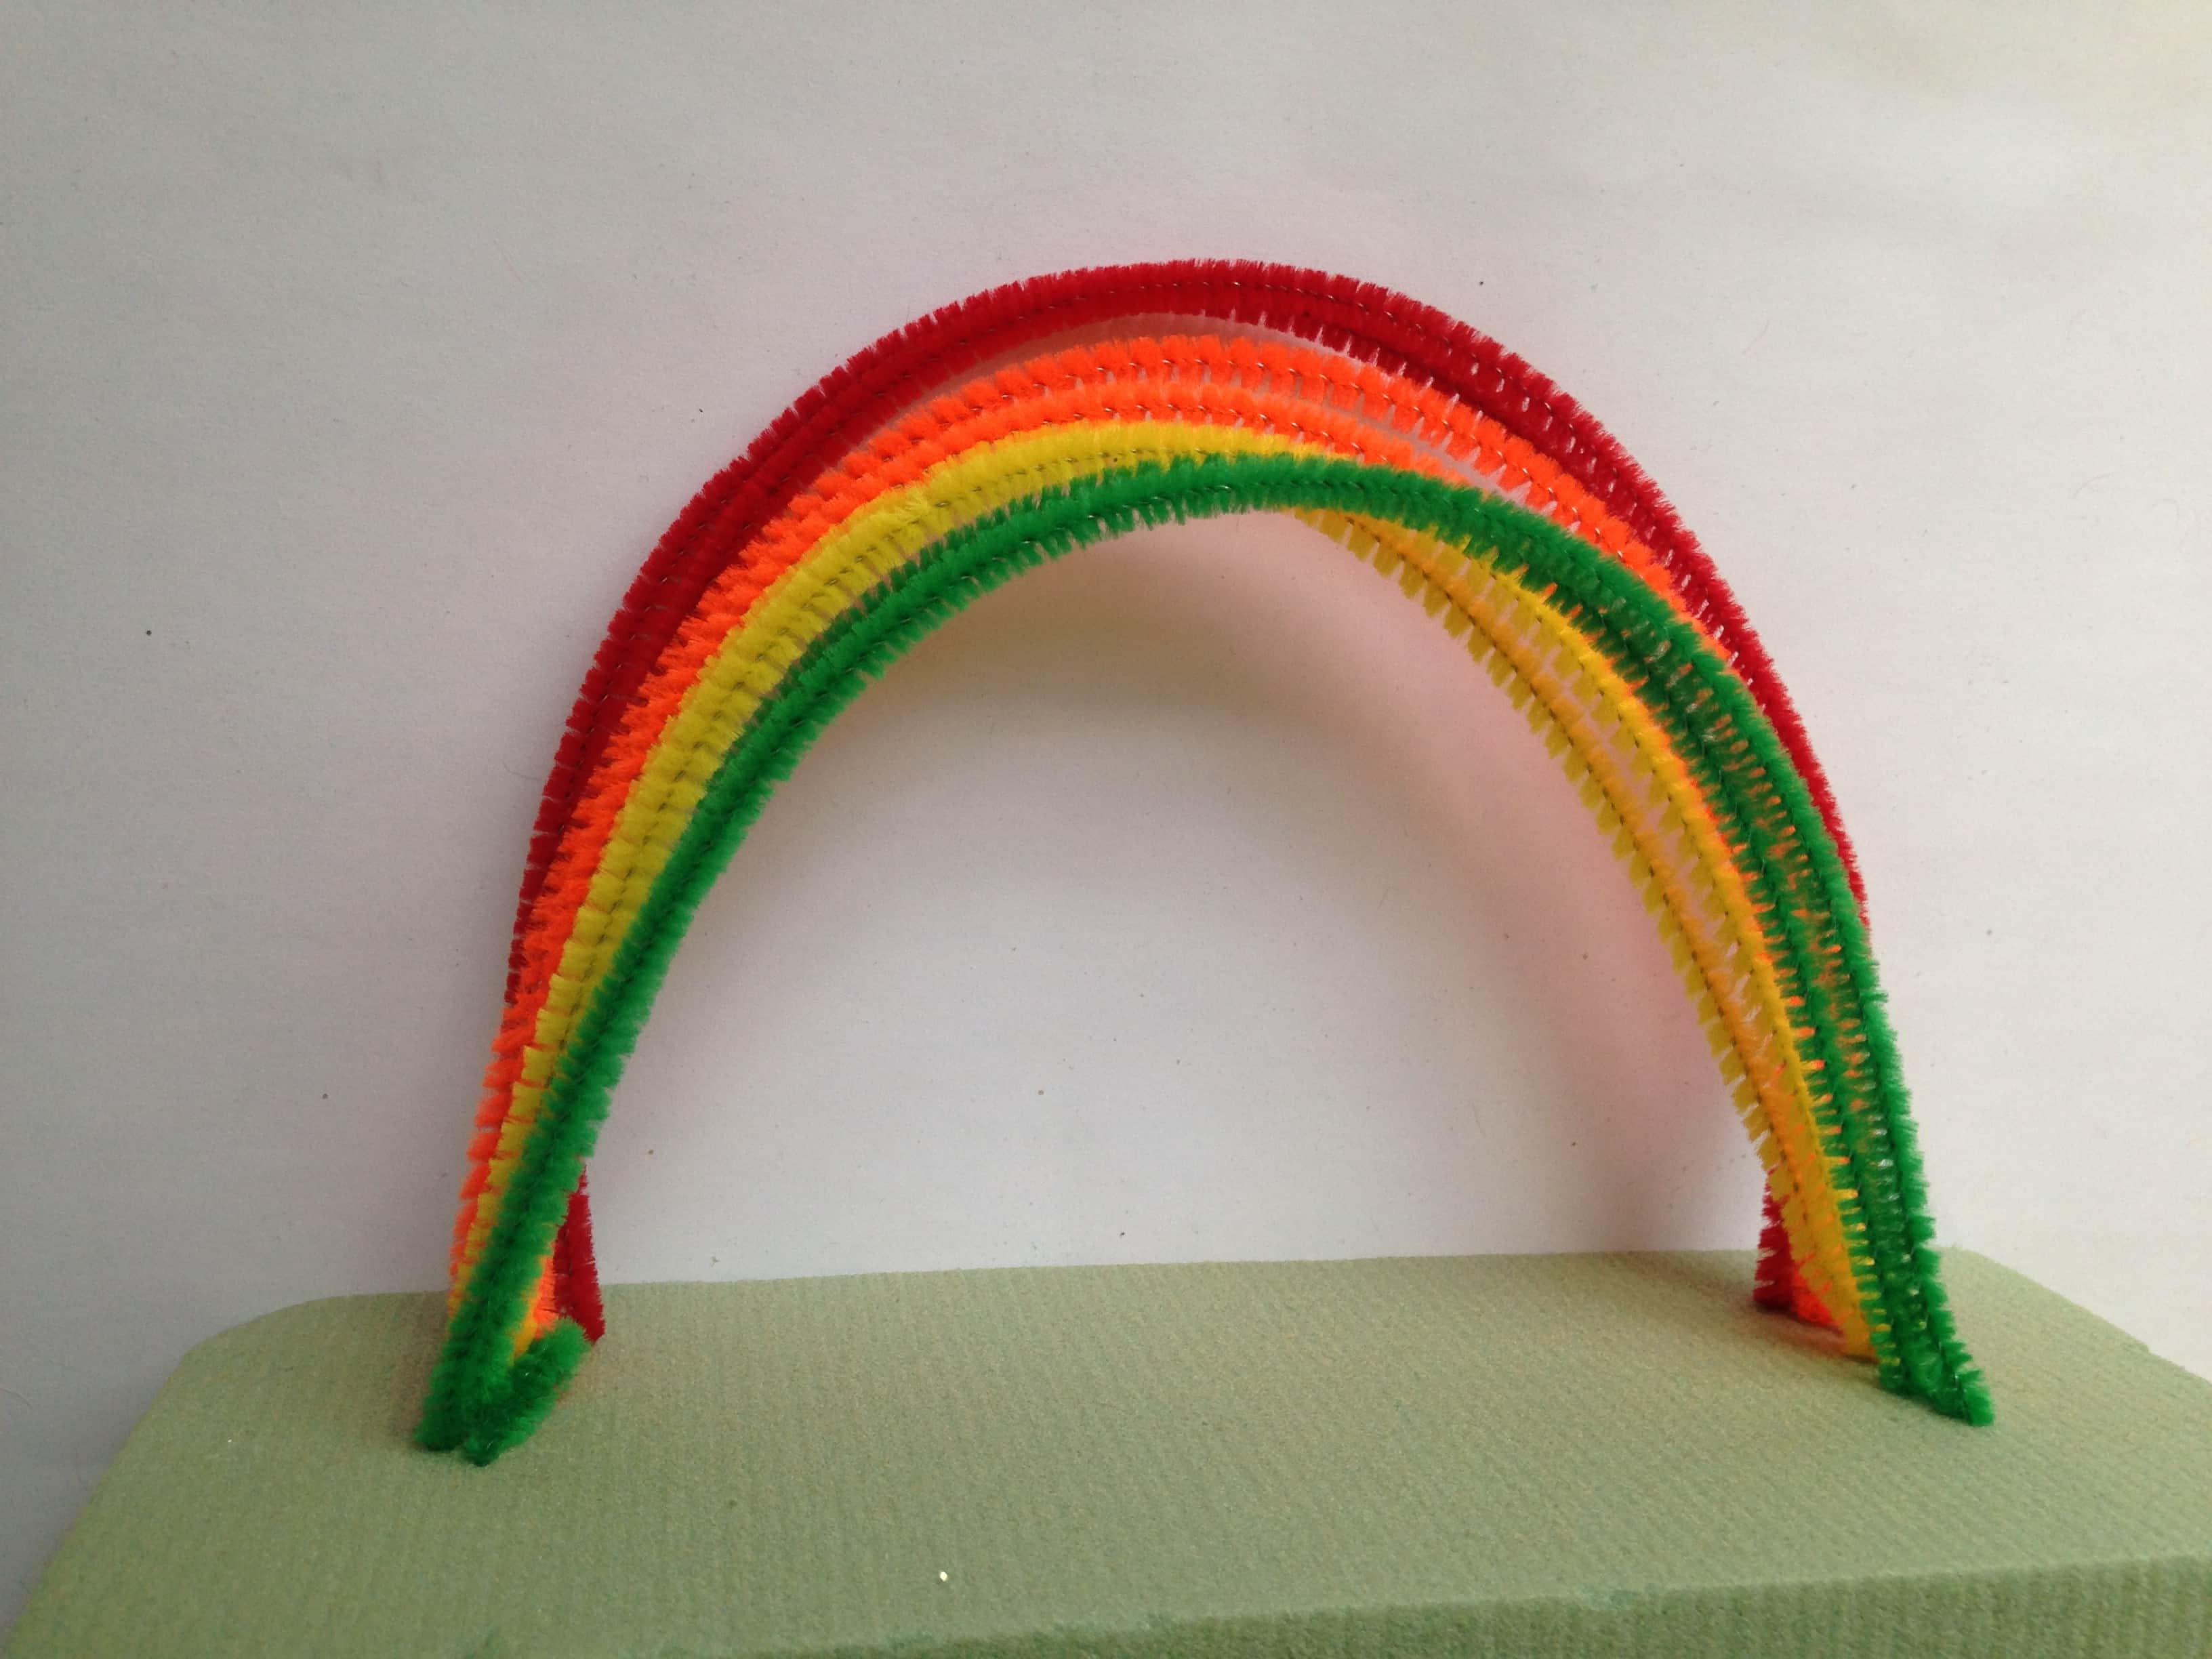 Build Your Own Rainbow Kit for Kids